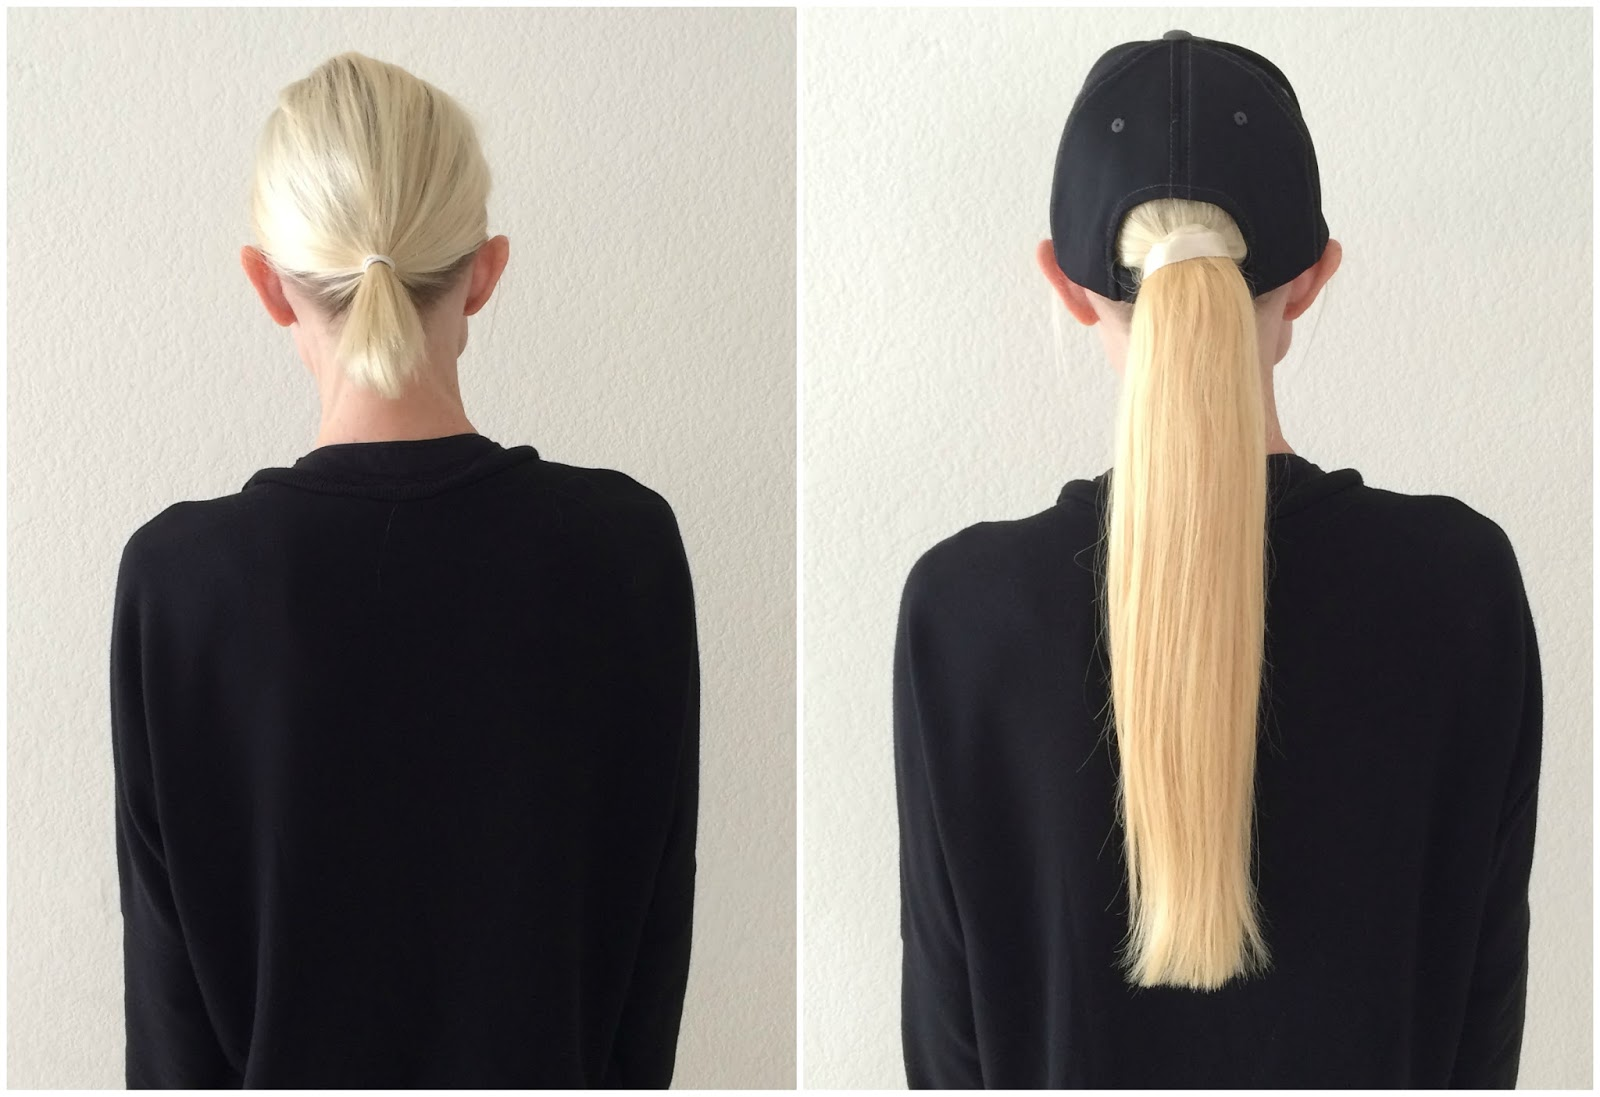 Hair Extension Ponytail Pros And Cons On The Daily Express